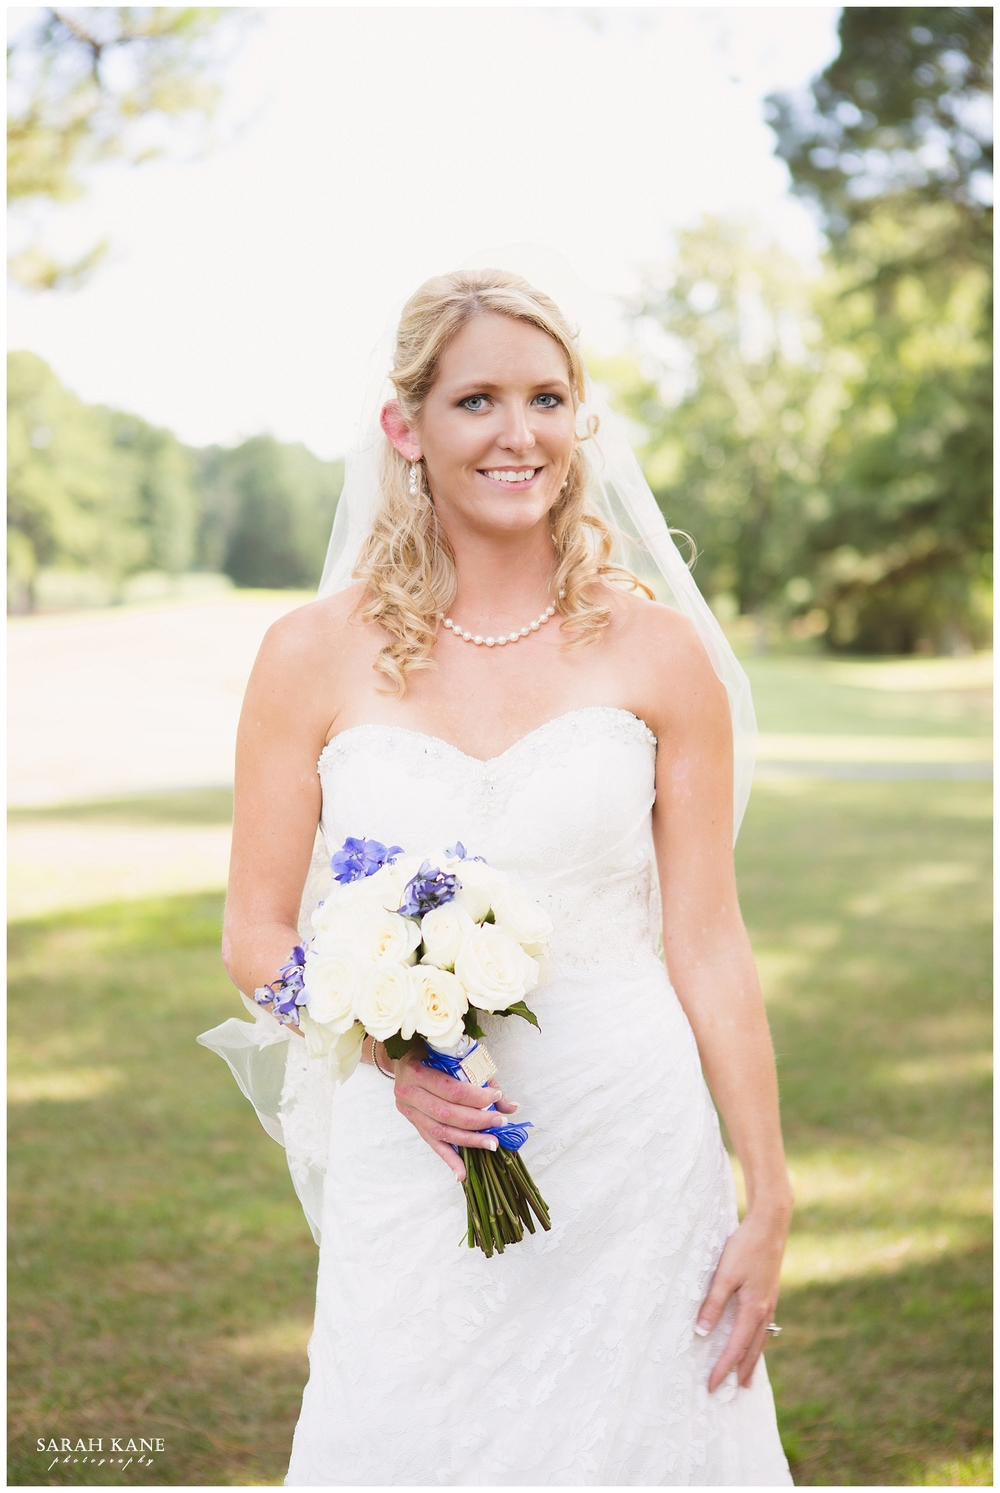 Blog - Petersburg VA Wedding - Sarah Kane Photography 002.JPG